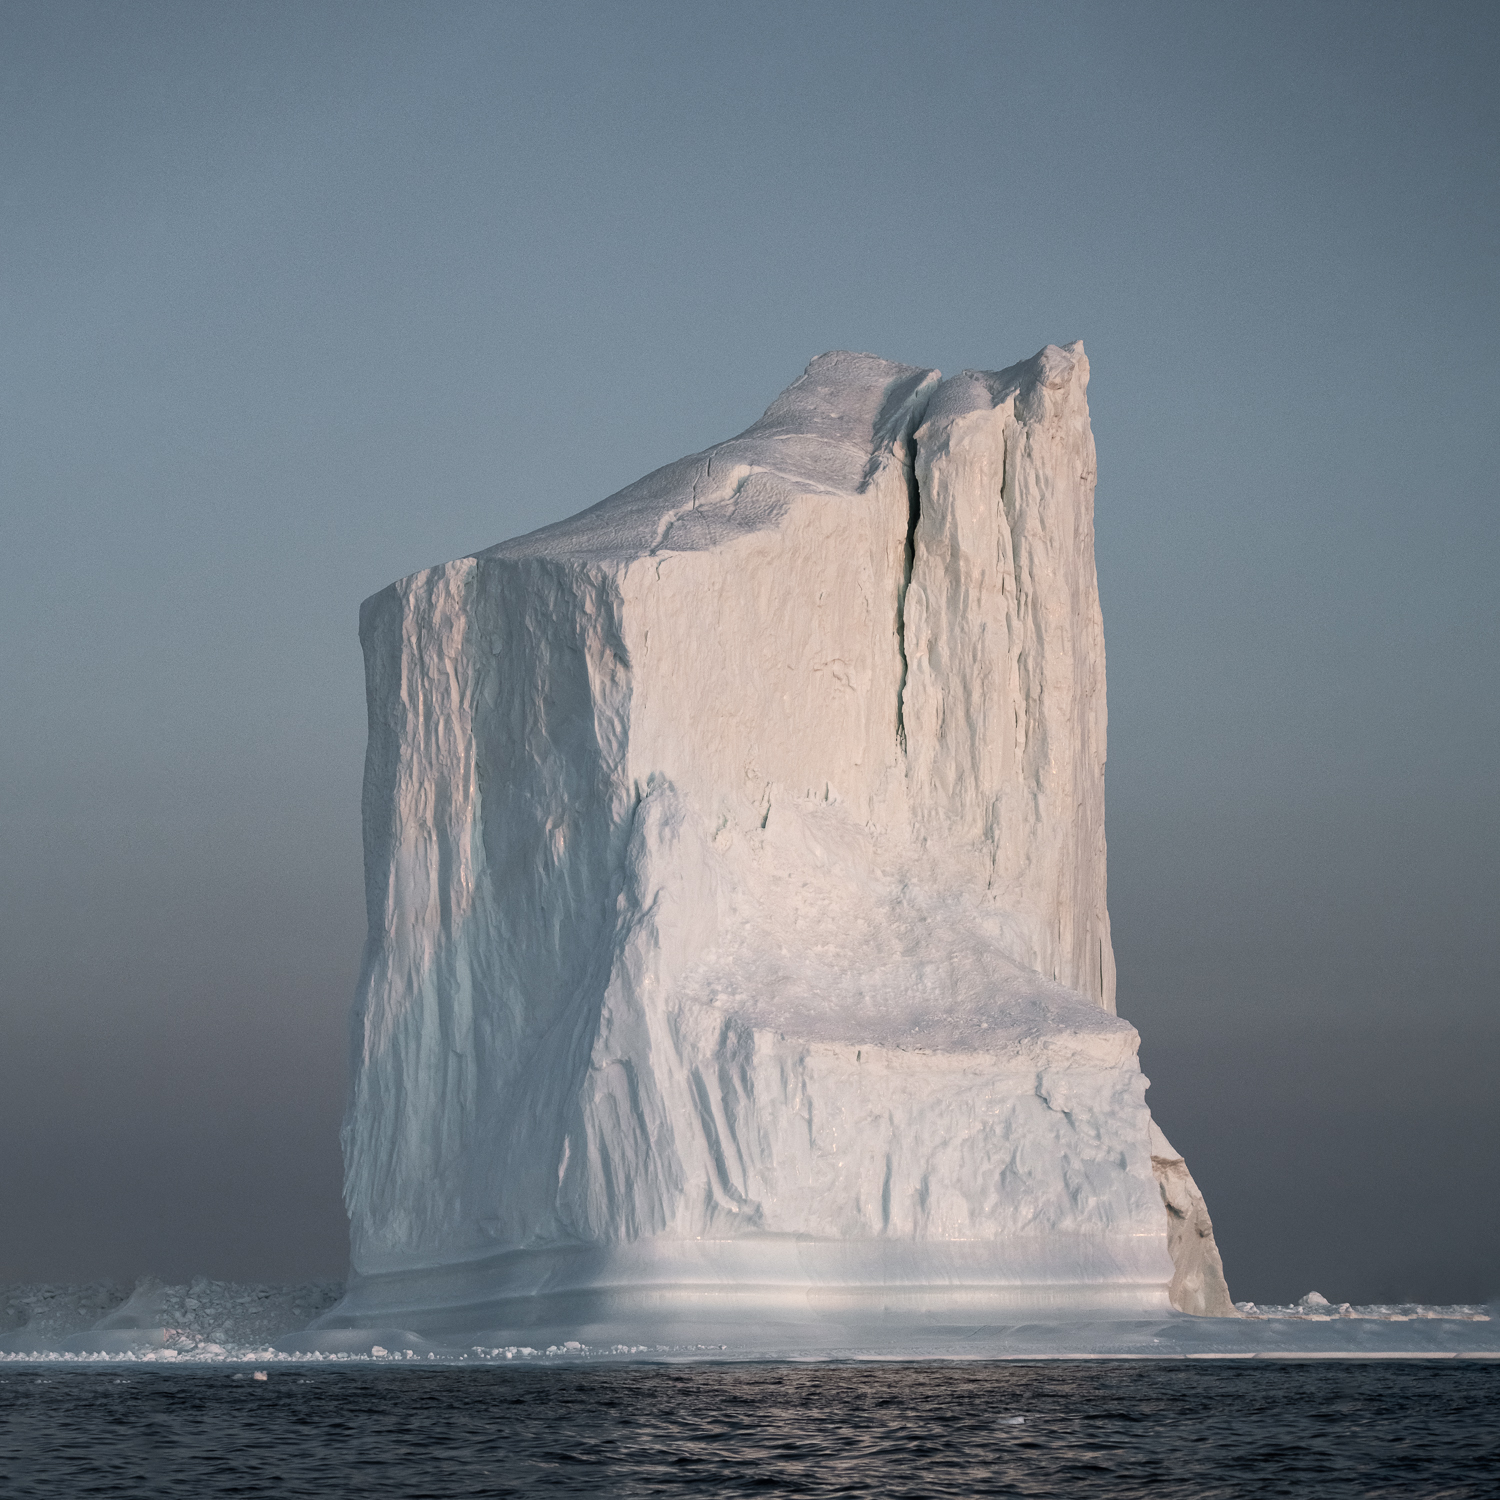 Ice - Photographing icebergs in Greenland